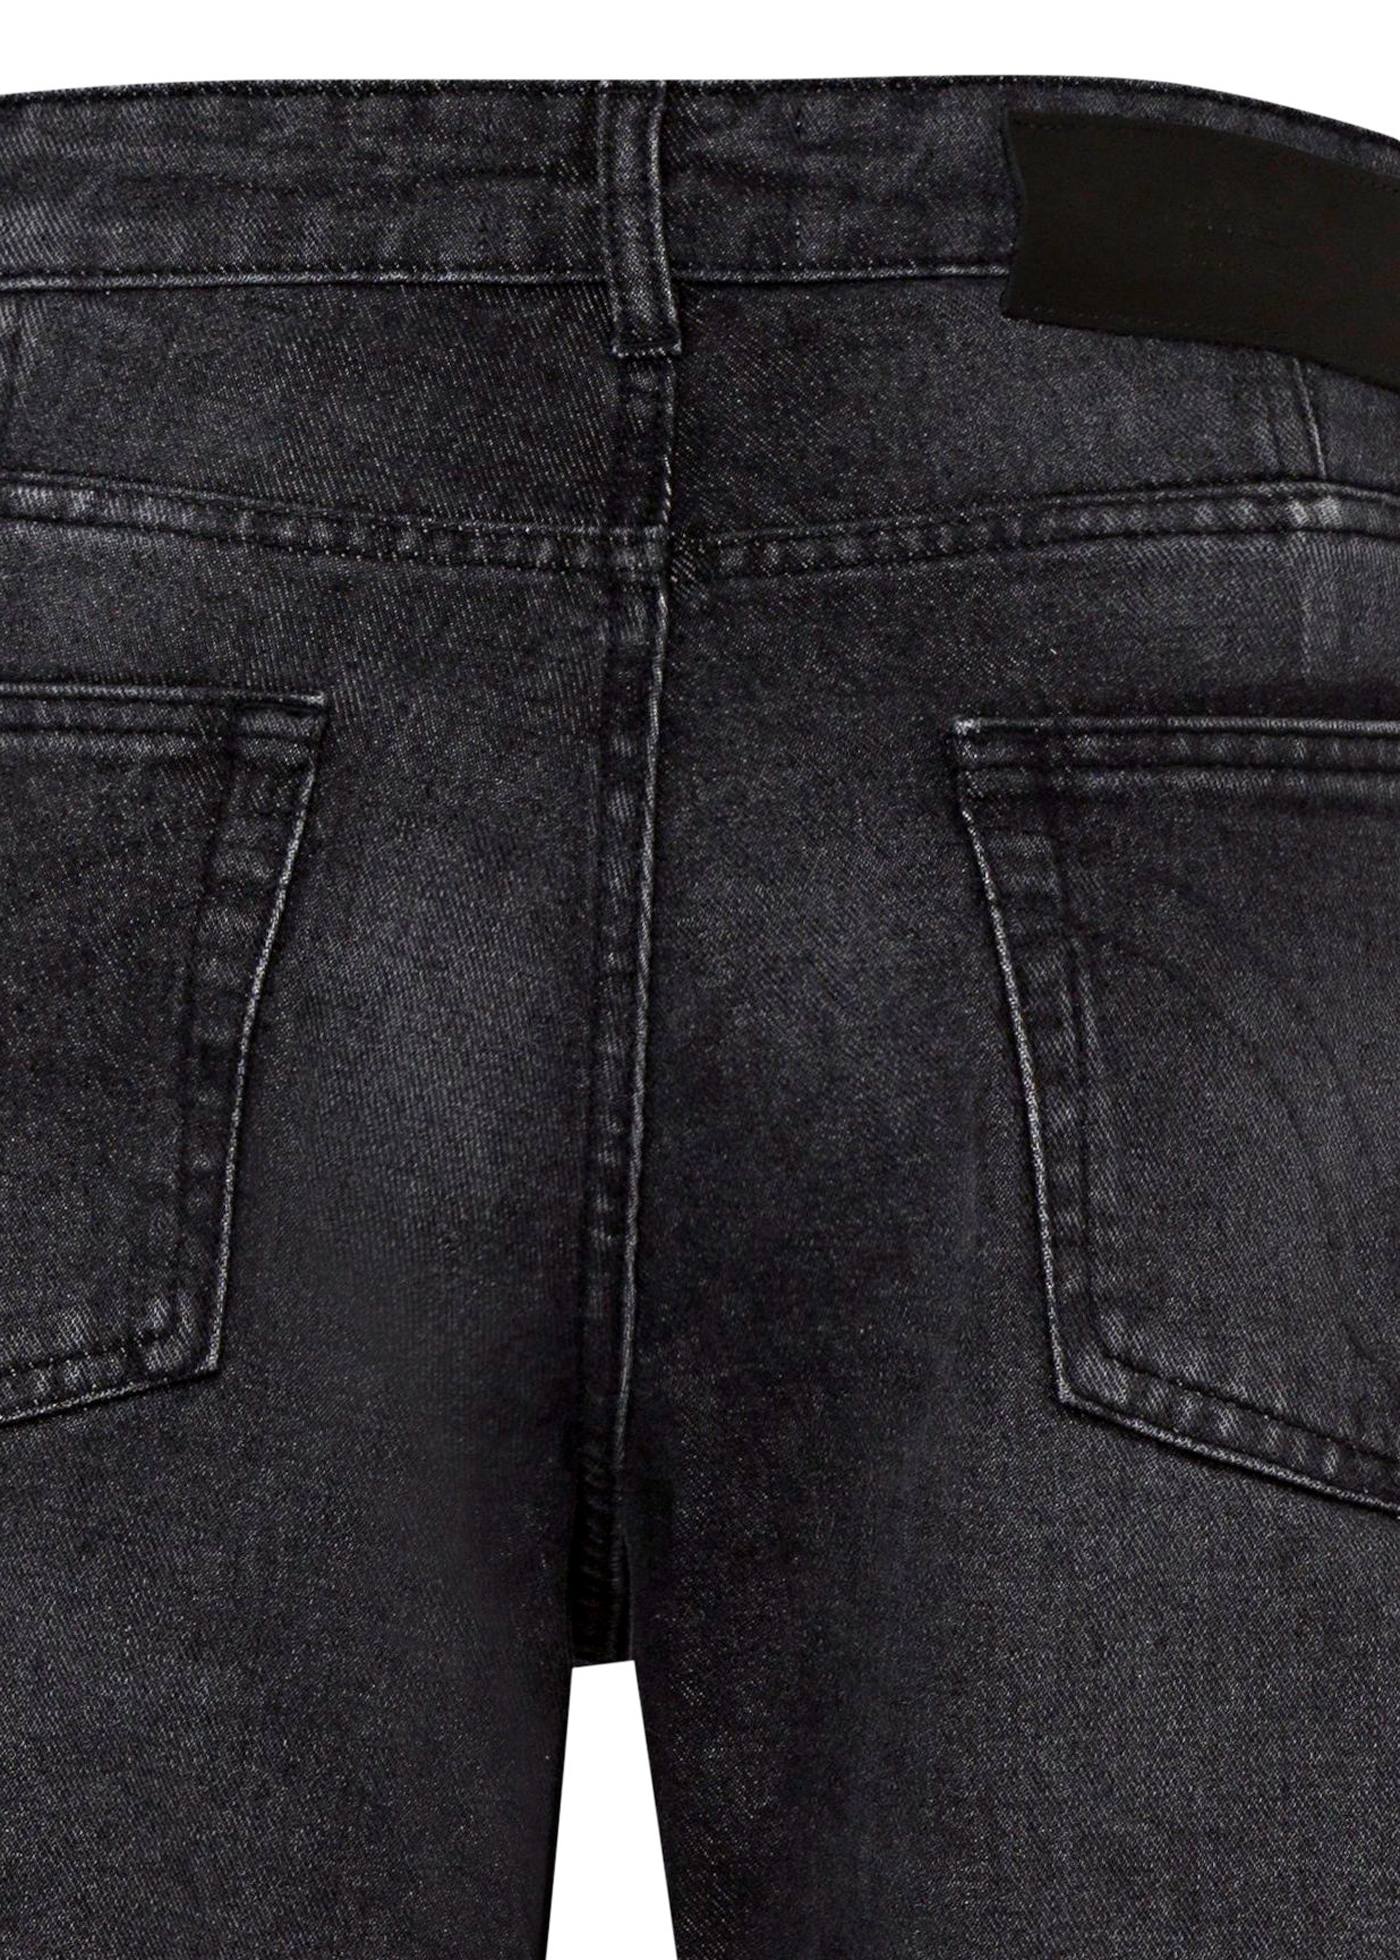 TAPERED FIT JEANS image number 3